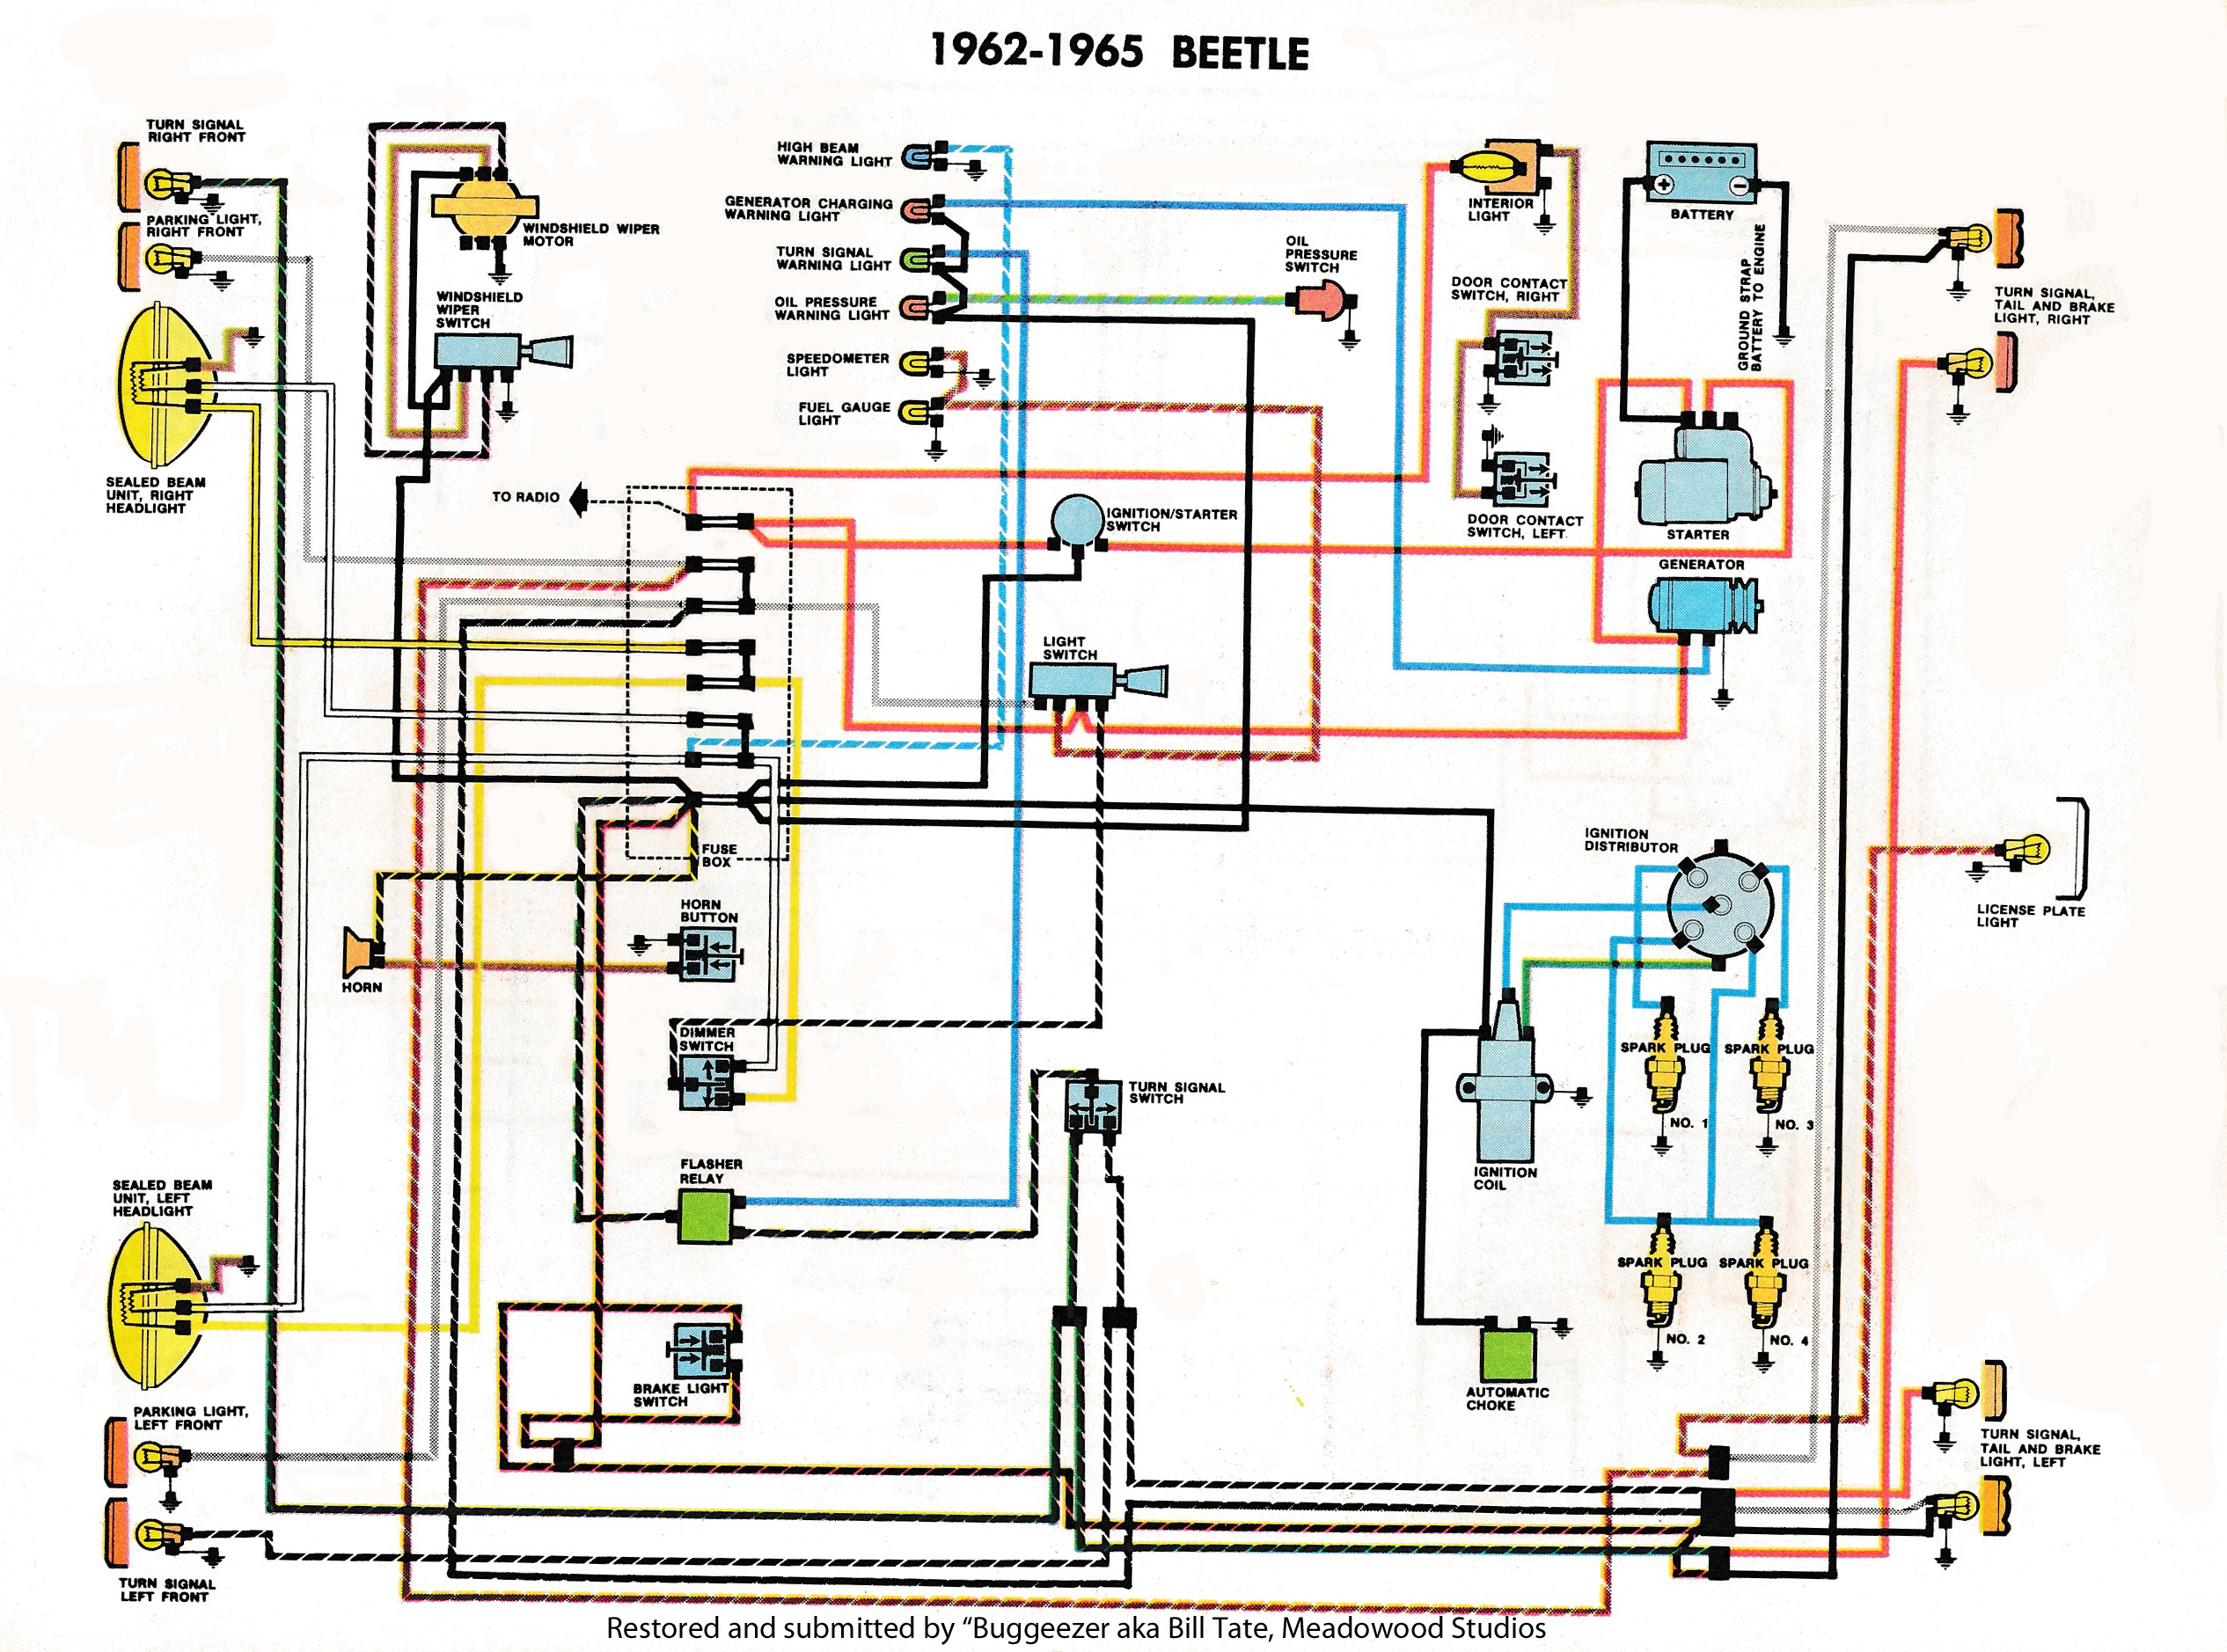 1967 vw beetle light switch wiring diagram thesamba.com :: type 1 wiring diagrams #12